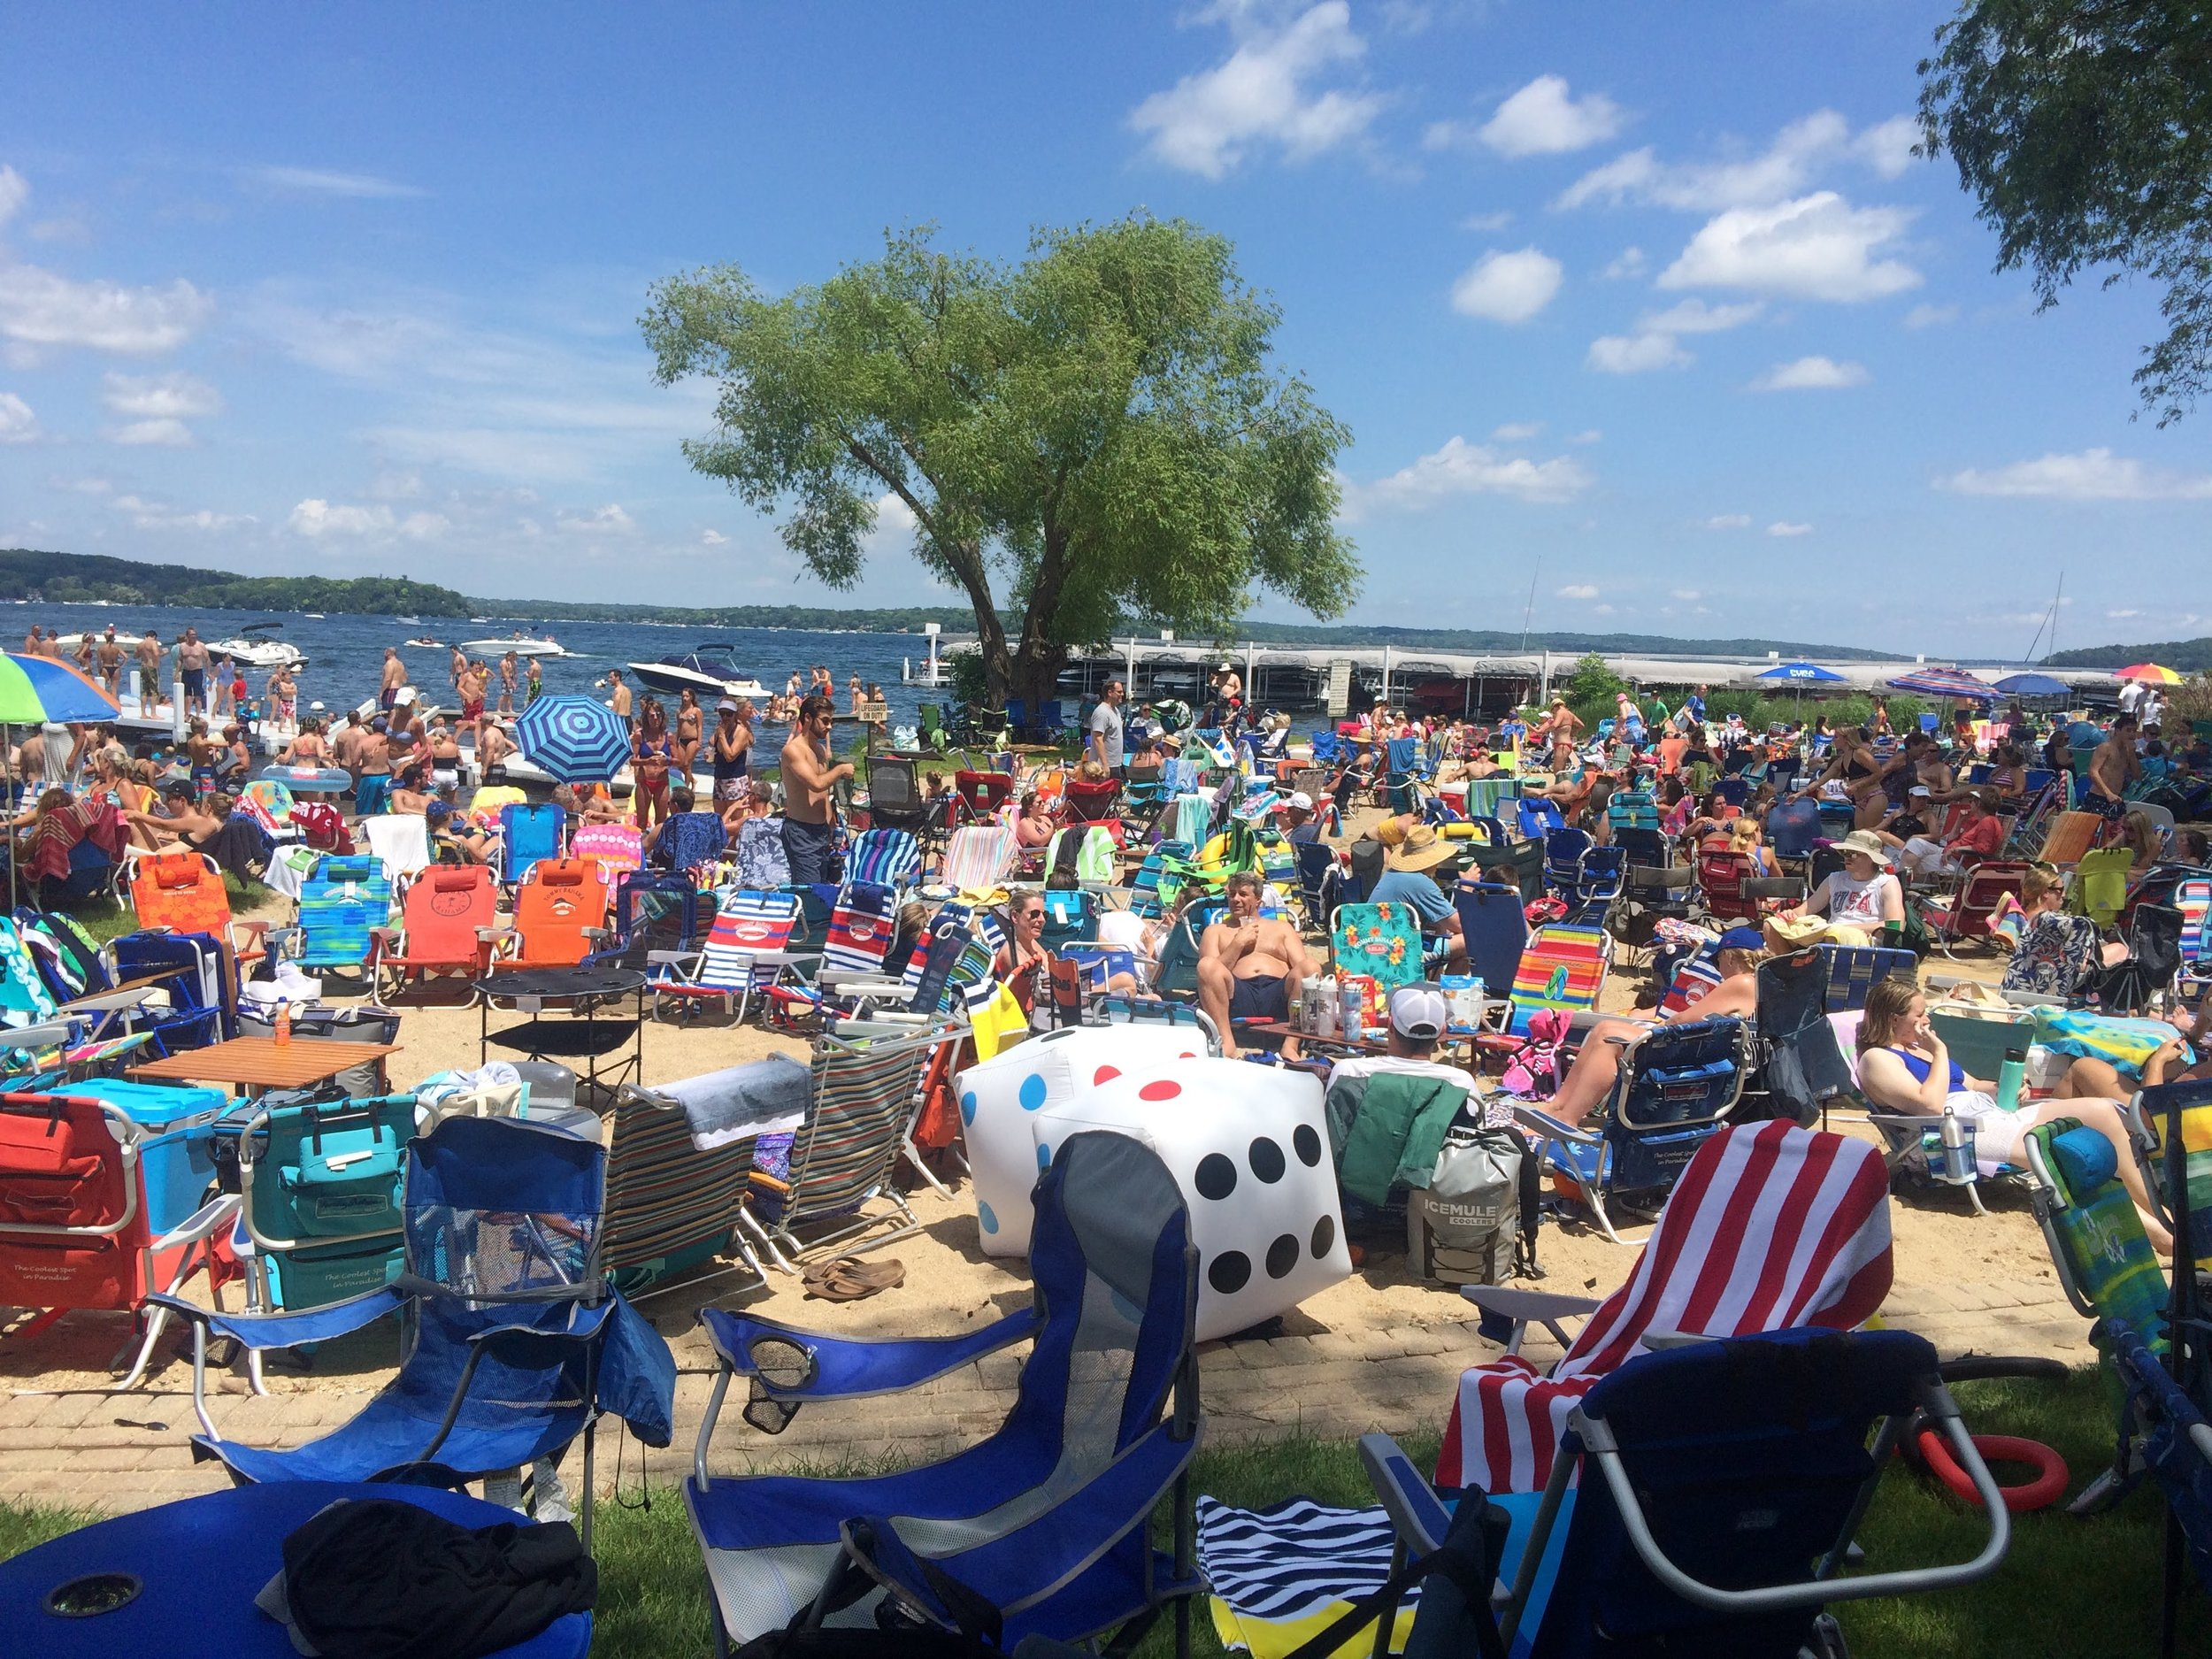 Off to Lake Geneva in Wisconsin where their July 4th celebration was quite a big event